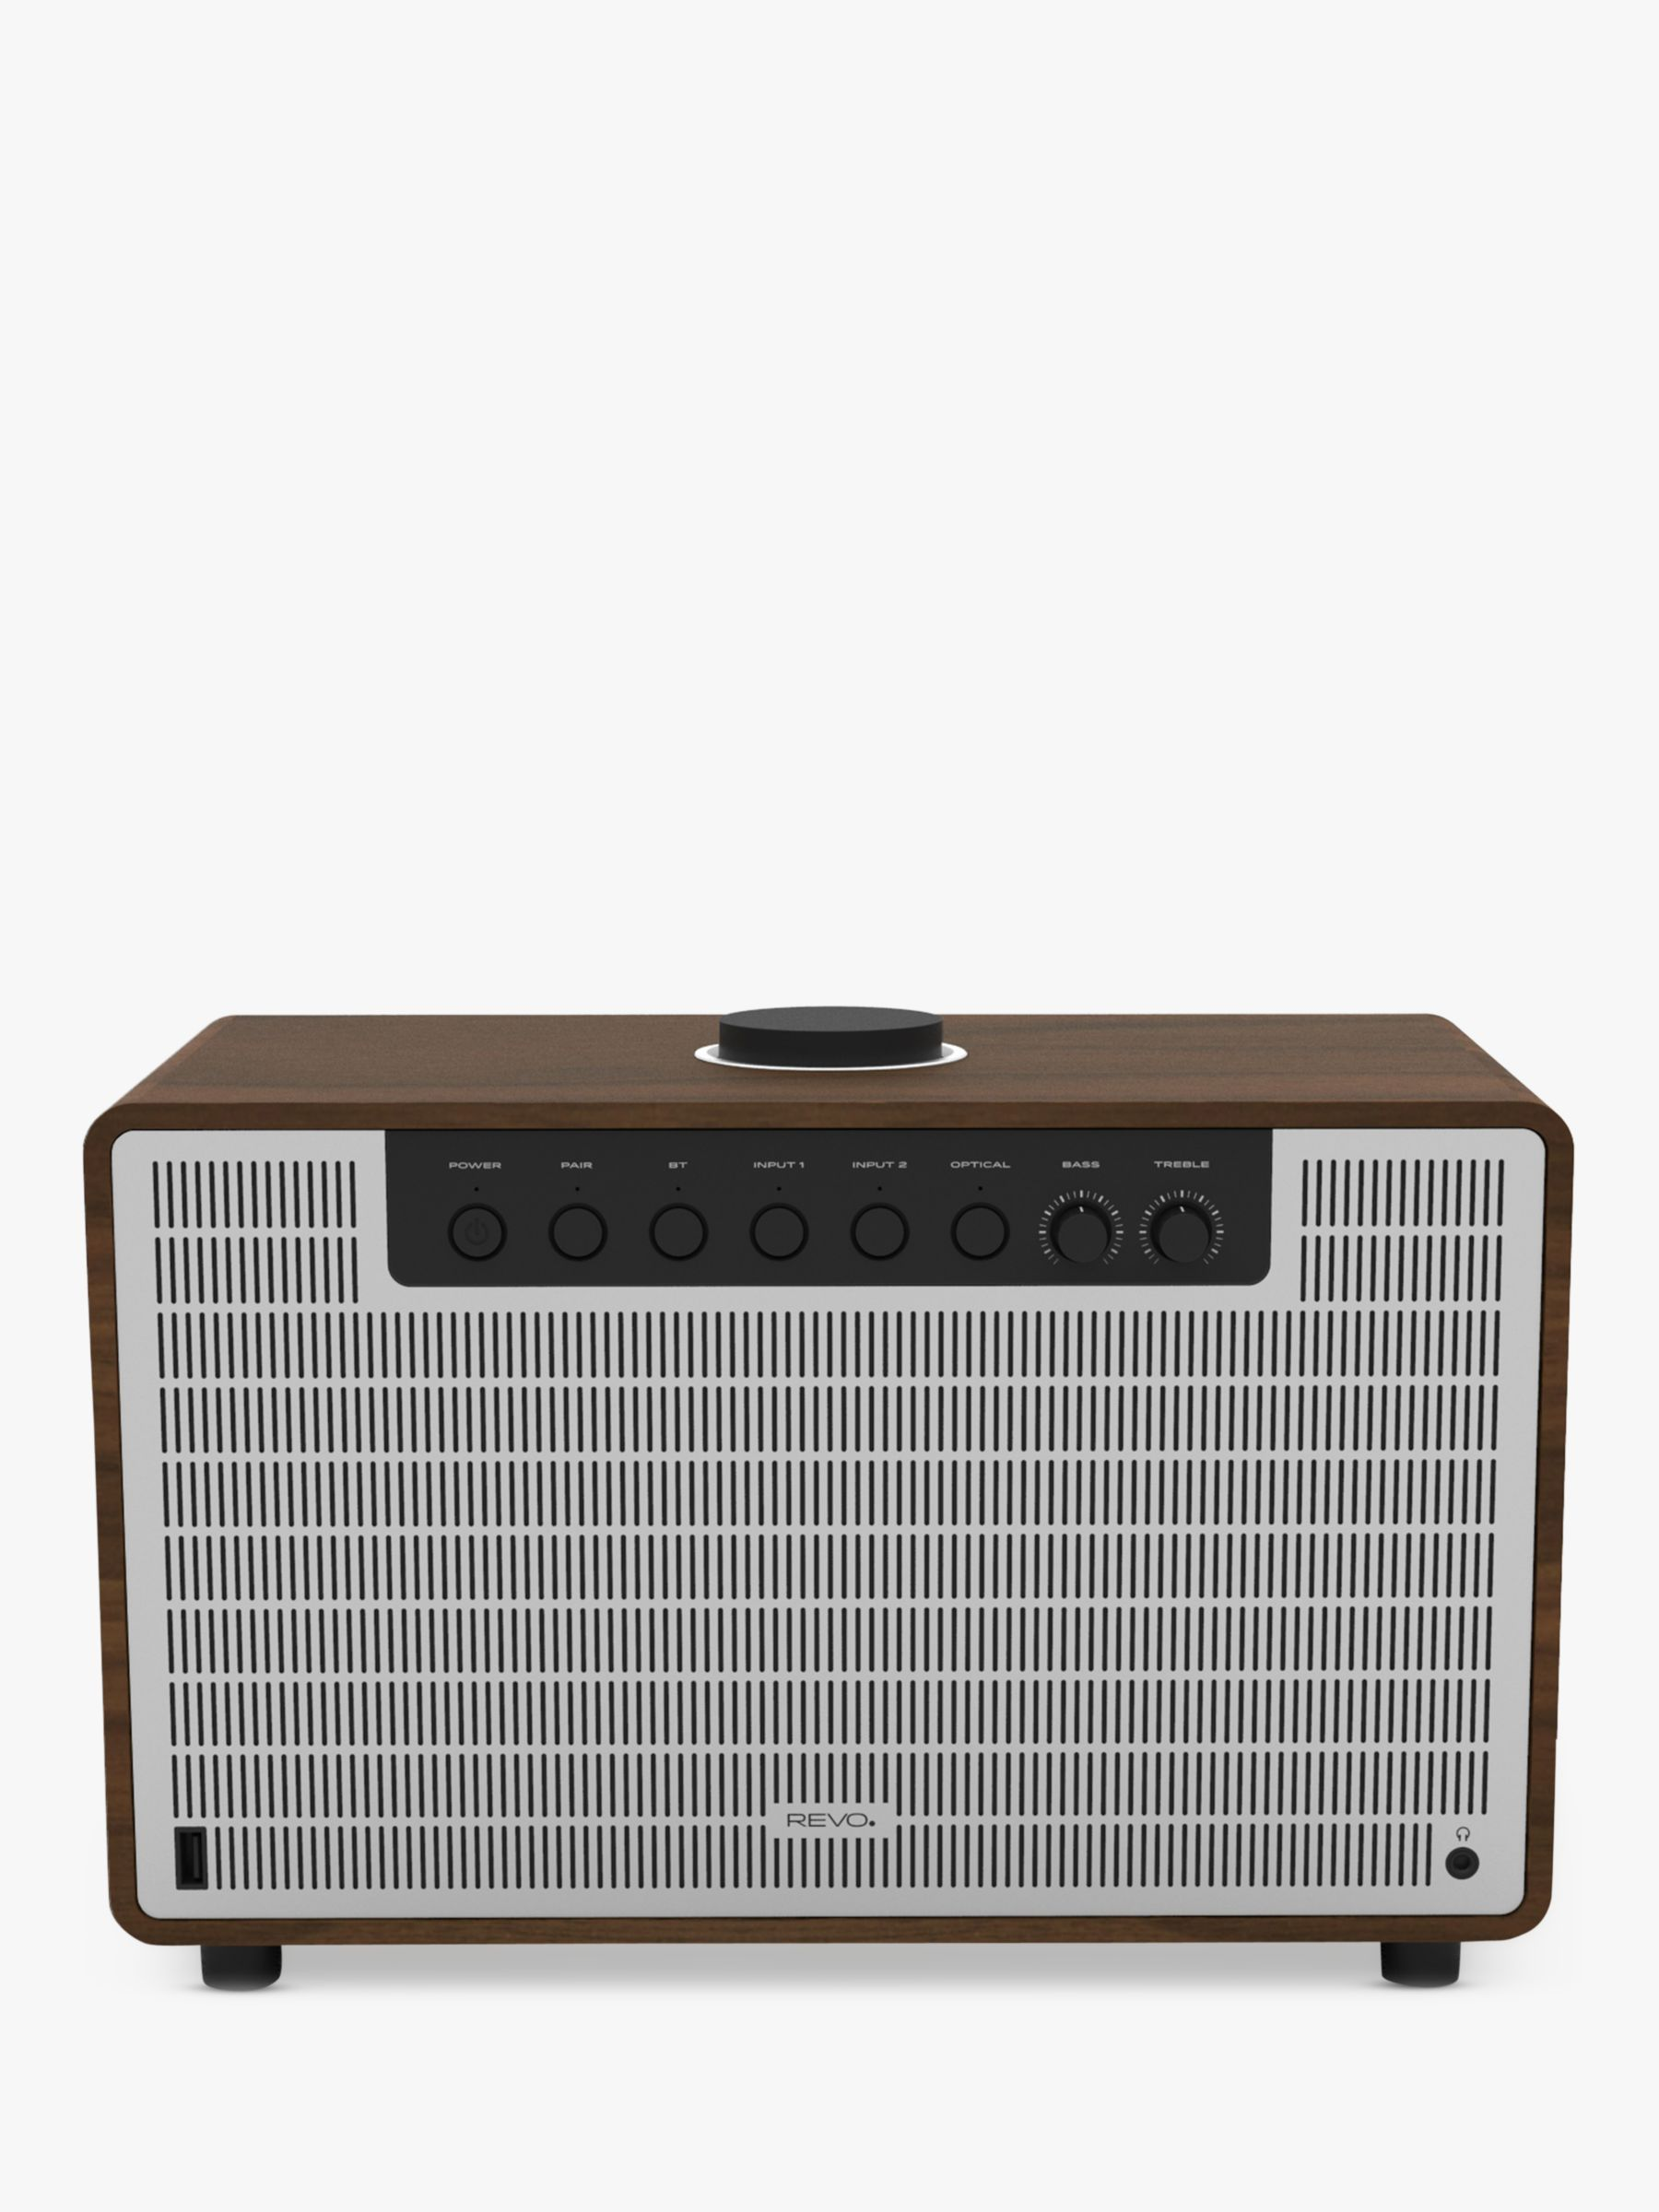 Revo Revo SuperTone Bluetooth Speaker, Walnut/Silver